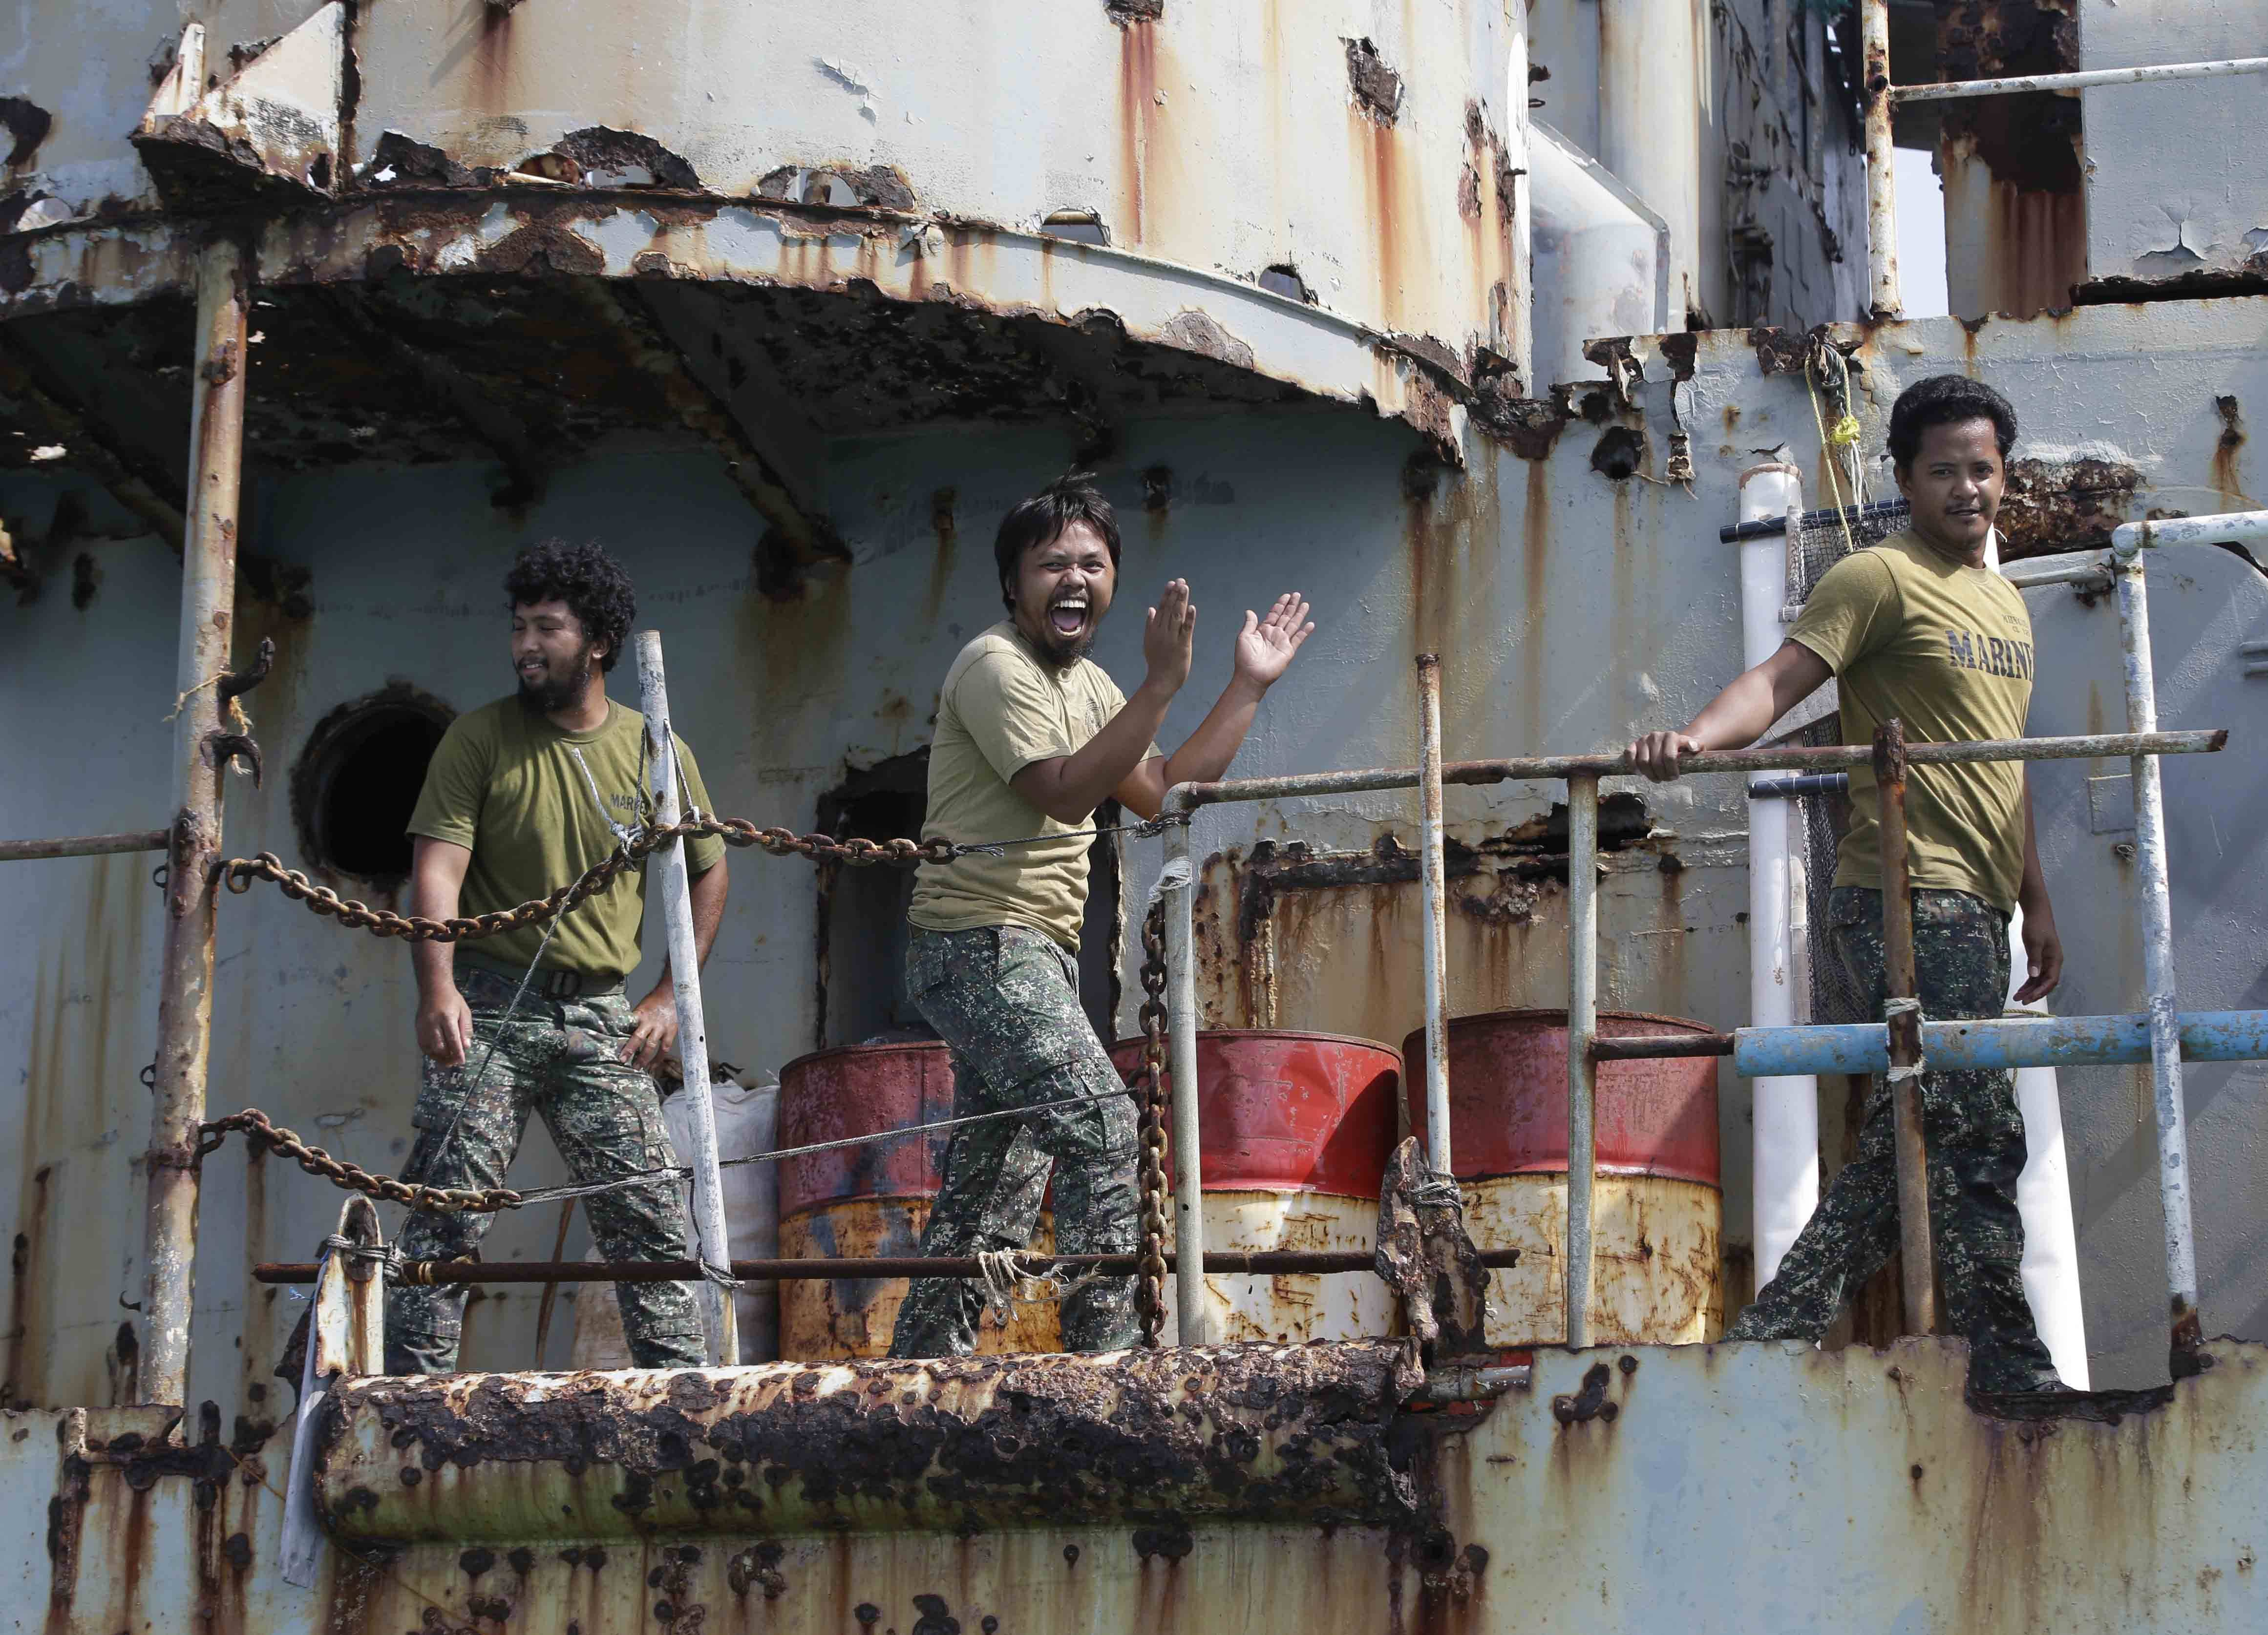 Philippine Marines deployed on the Philippine Navy ship LT 57 Sieera Madre applaud after the Philippine Government vessel AM700 successfully docks beside it off Second Thomas Shoal.